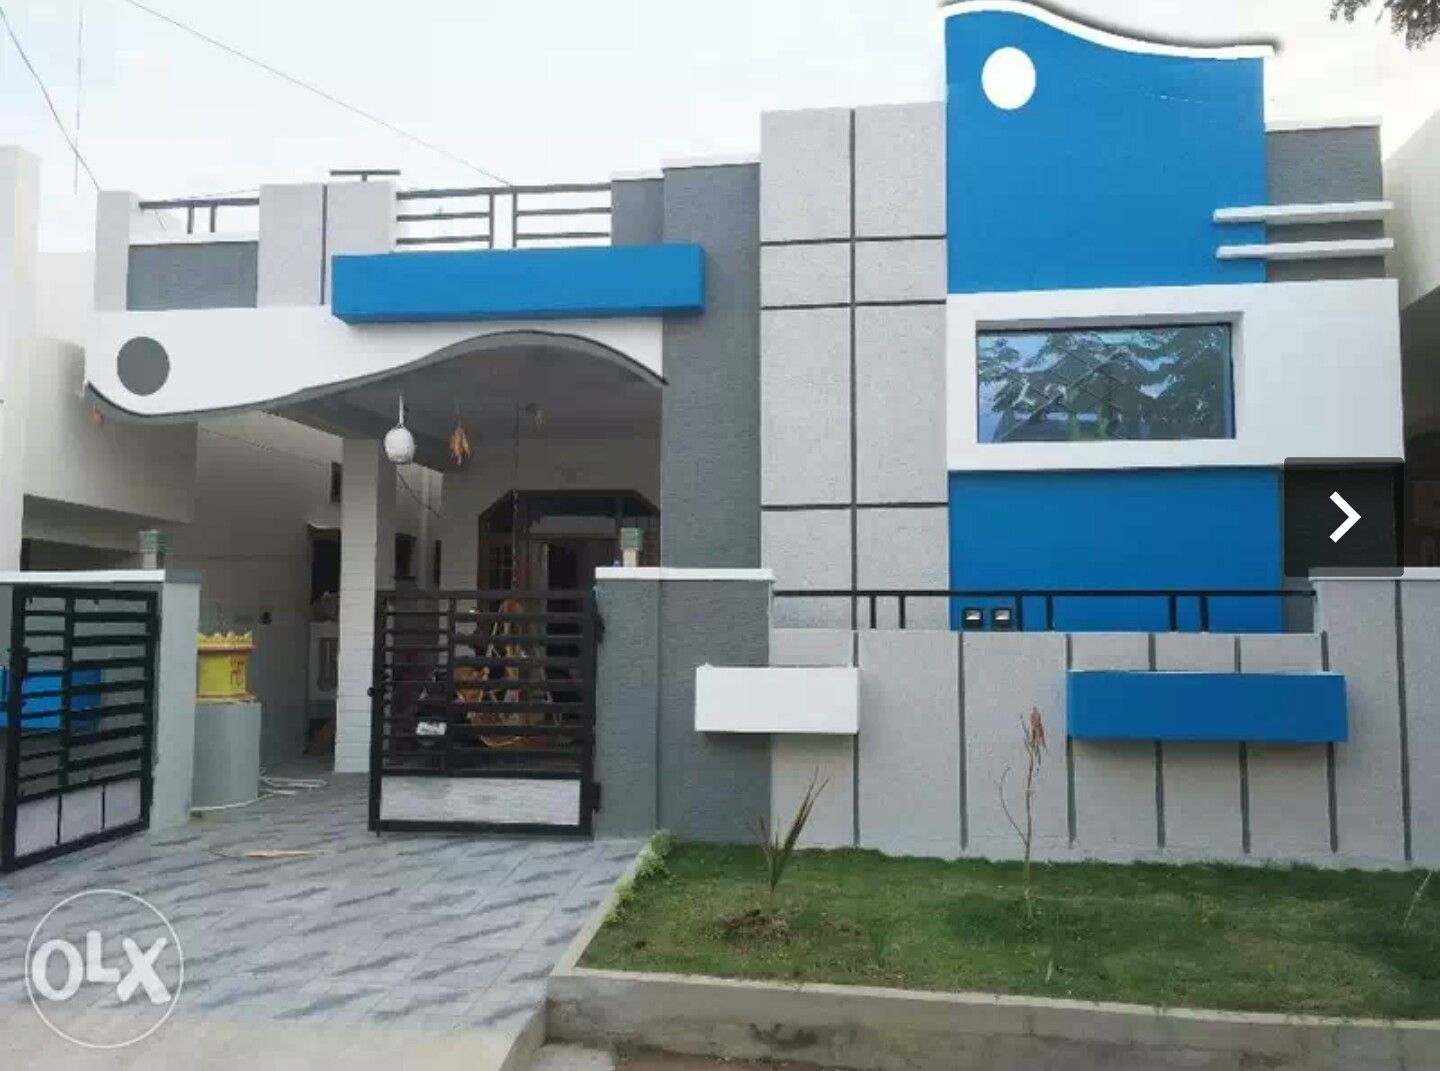 Asaram front elevation designs house building indian plans modern also home design pinterest and rh